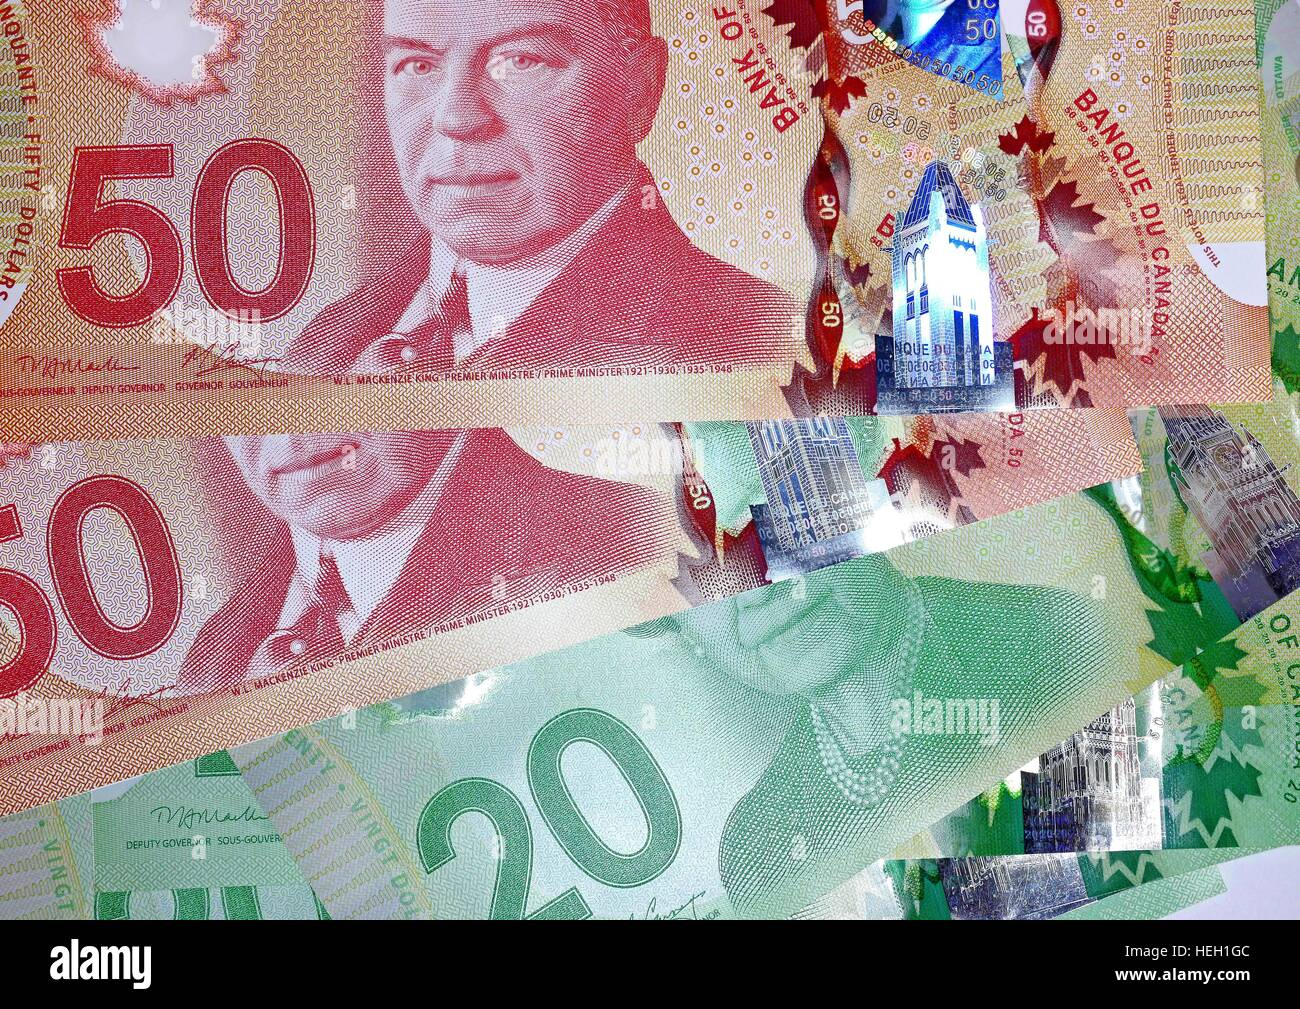 The Bank of Canada issued new high tech polymer money with holograms that will last longer and be harder to counterfeit. - Stock Image